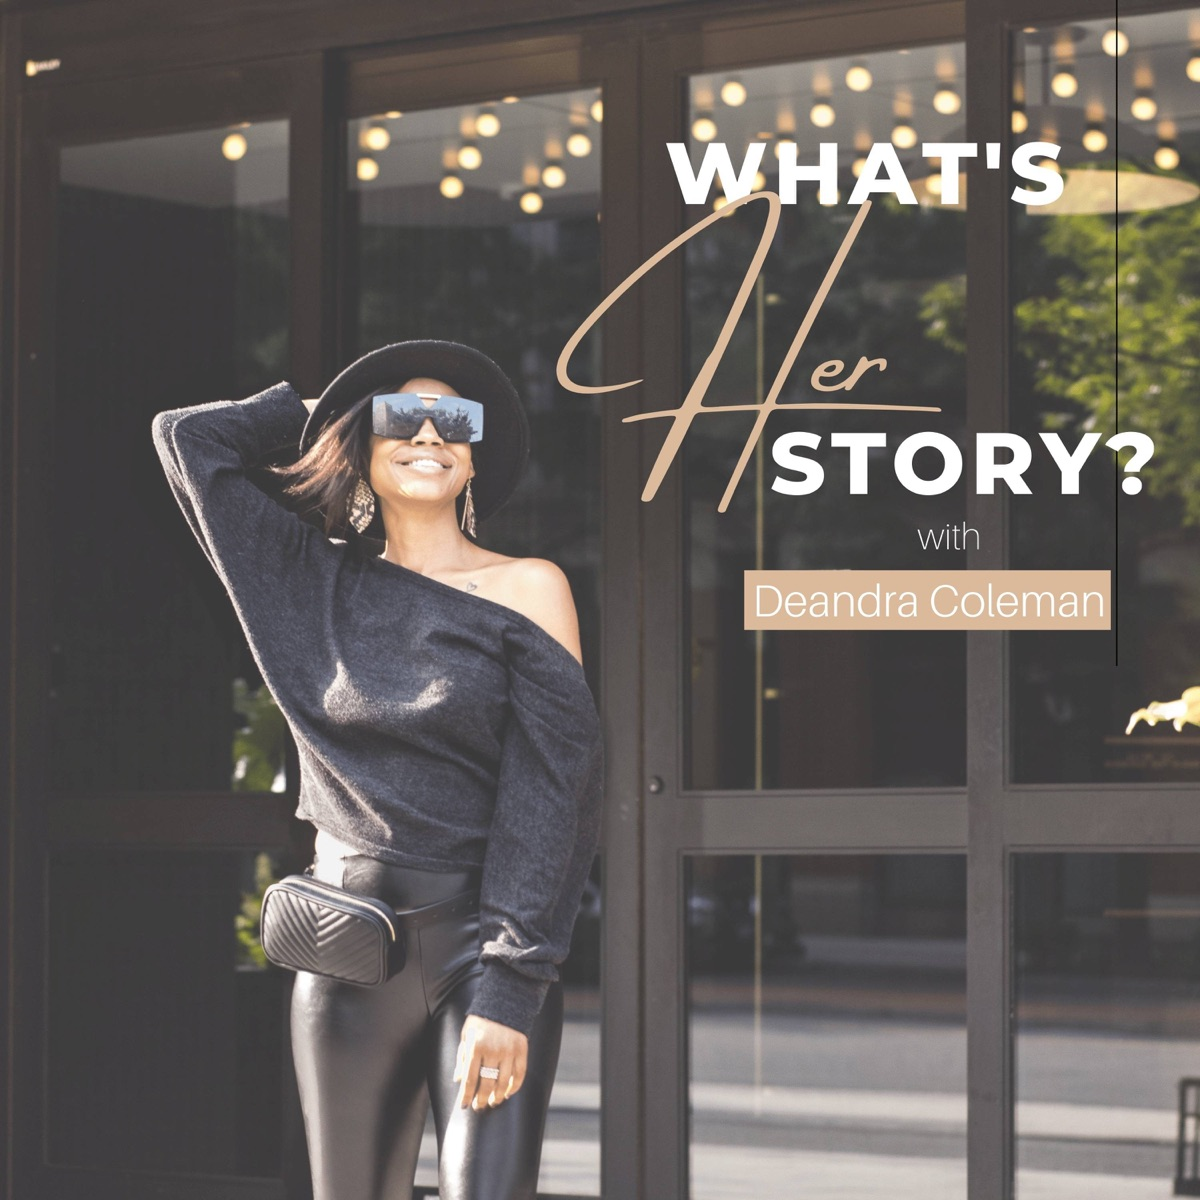 WHAT'S HER STORY?